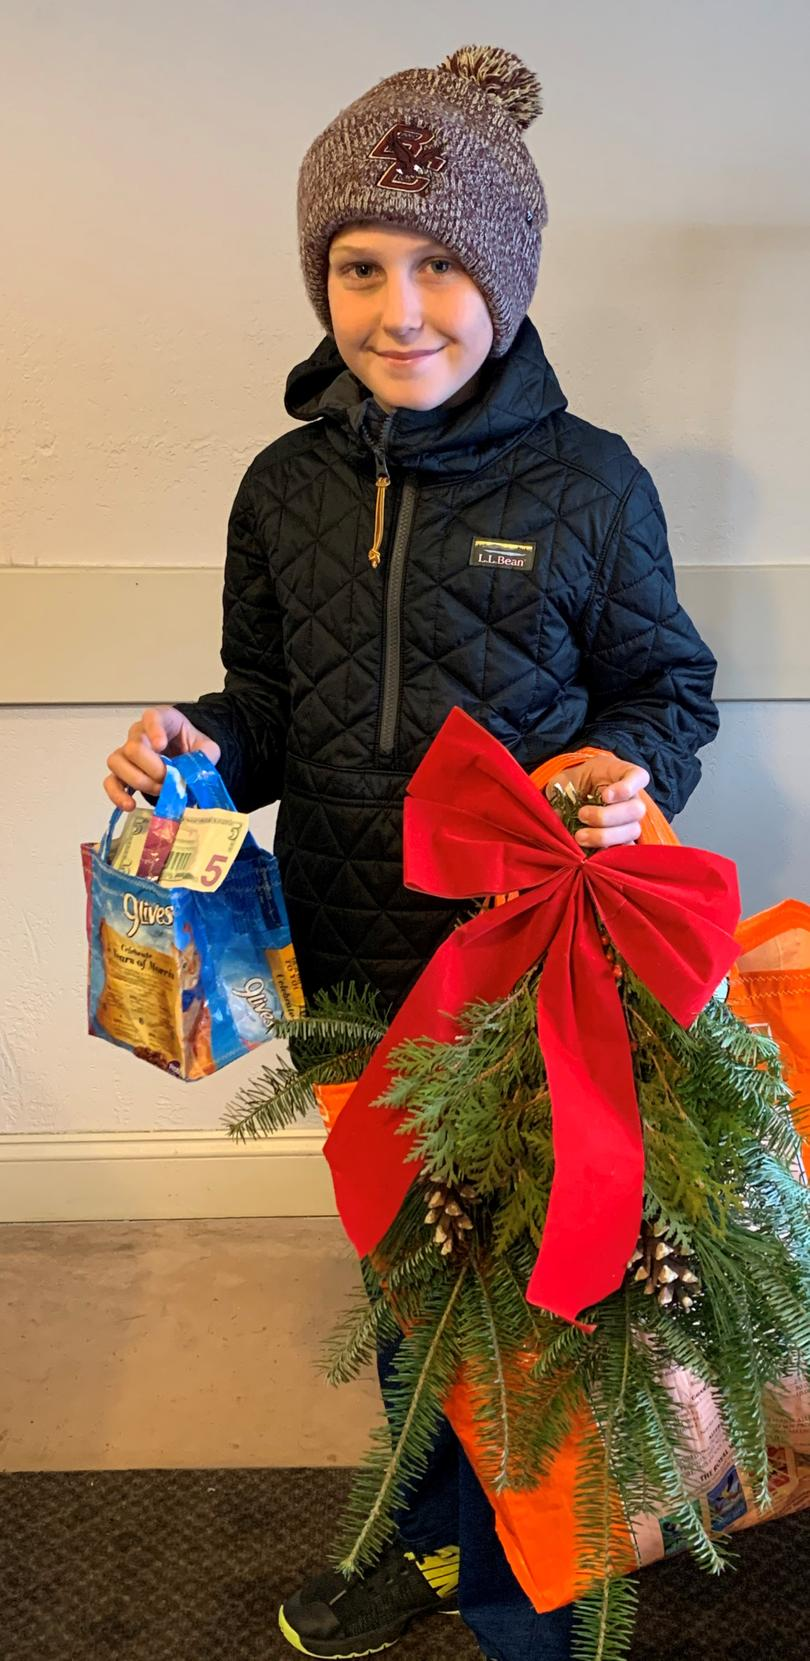 Reed Potter received funding through the Hope Fund to buy a pig and raise it through 4-H. He was so appreciative he sold grain bags and Christmas swags that he had made and donated $100 back to the Hope Fund!